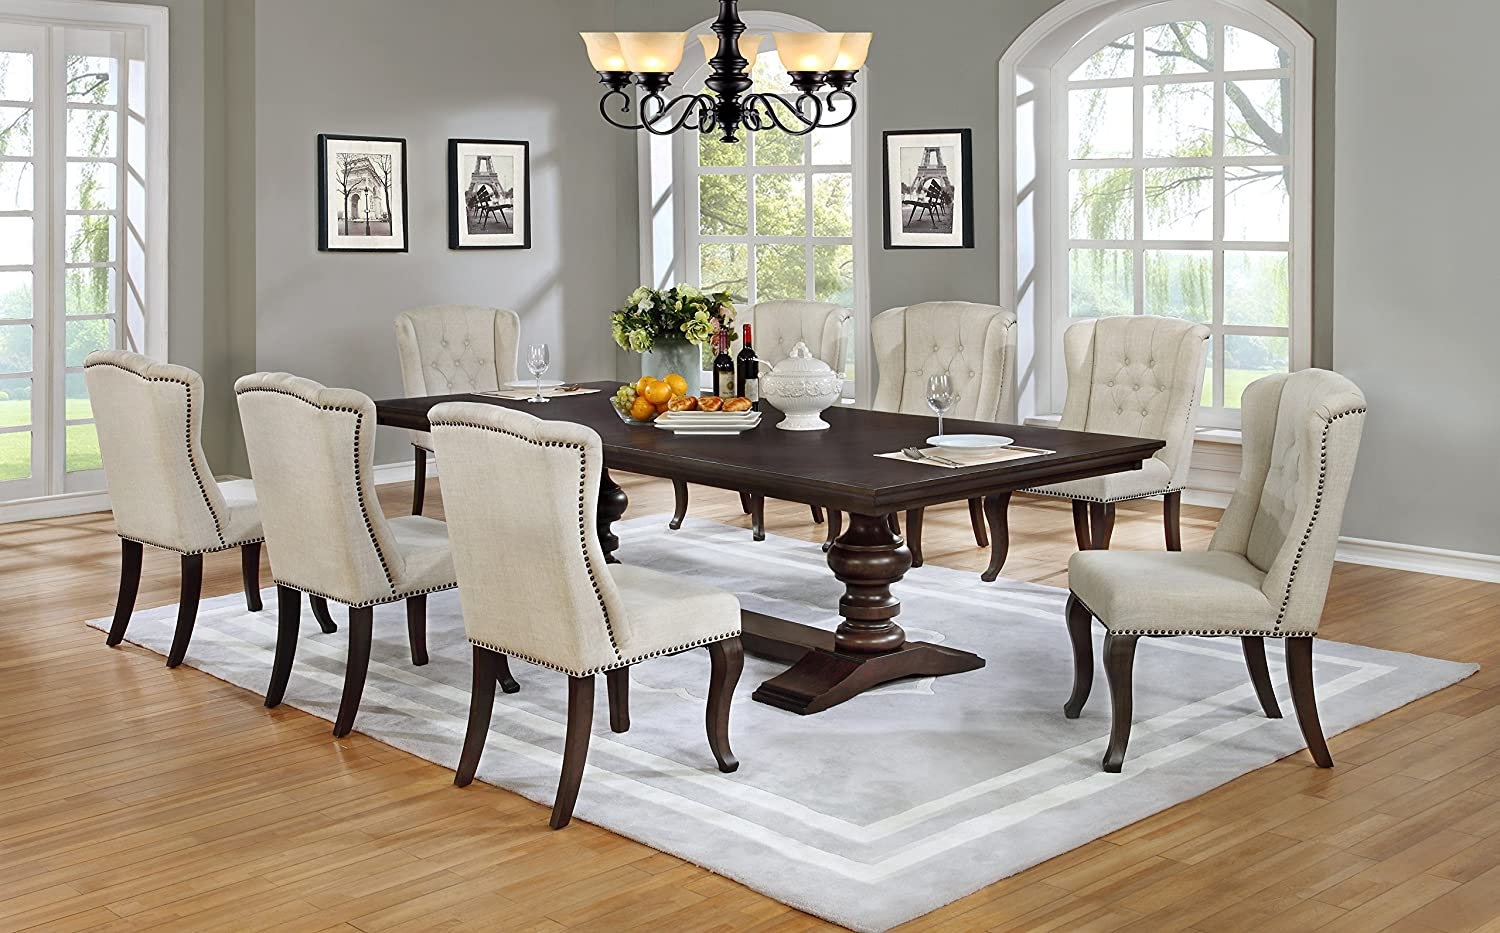 Best Quality Furniture D35Set Beige Linen Look Upholstered Cappuccino  Dining (9 Piece Set)